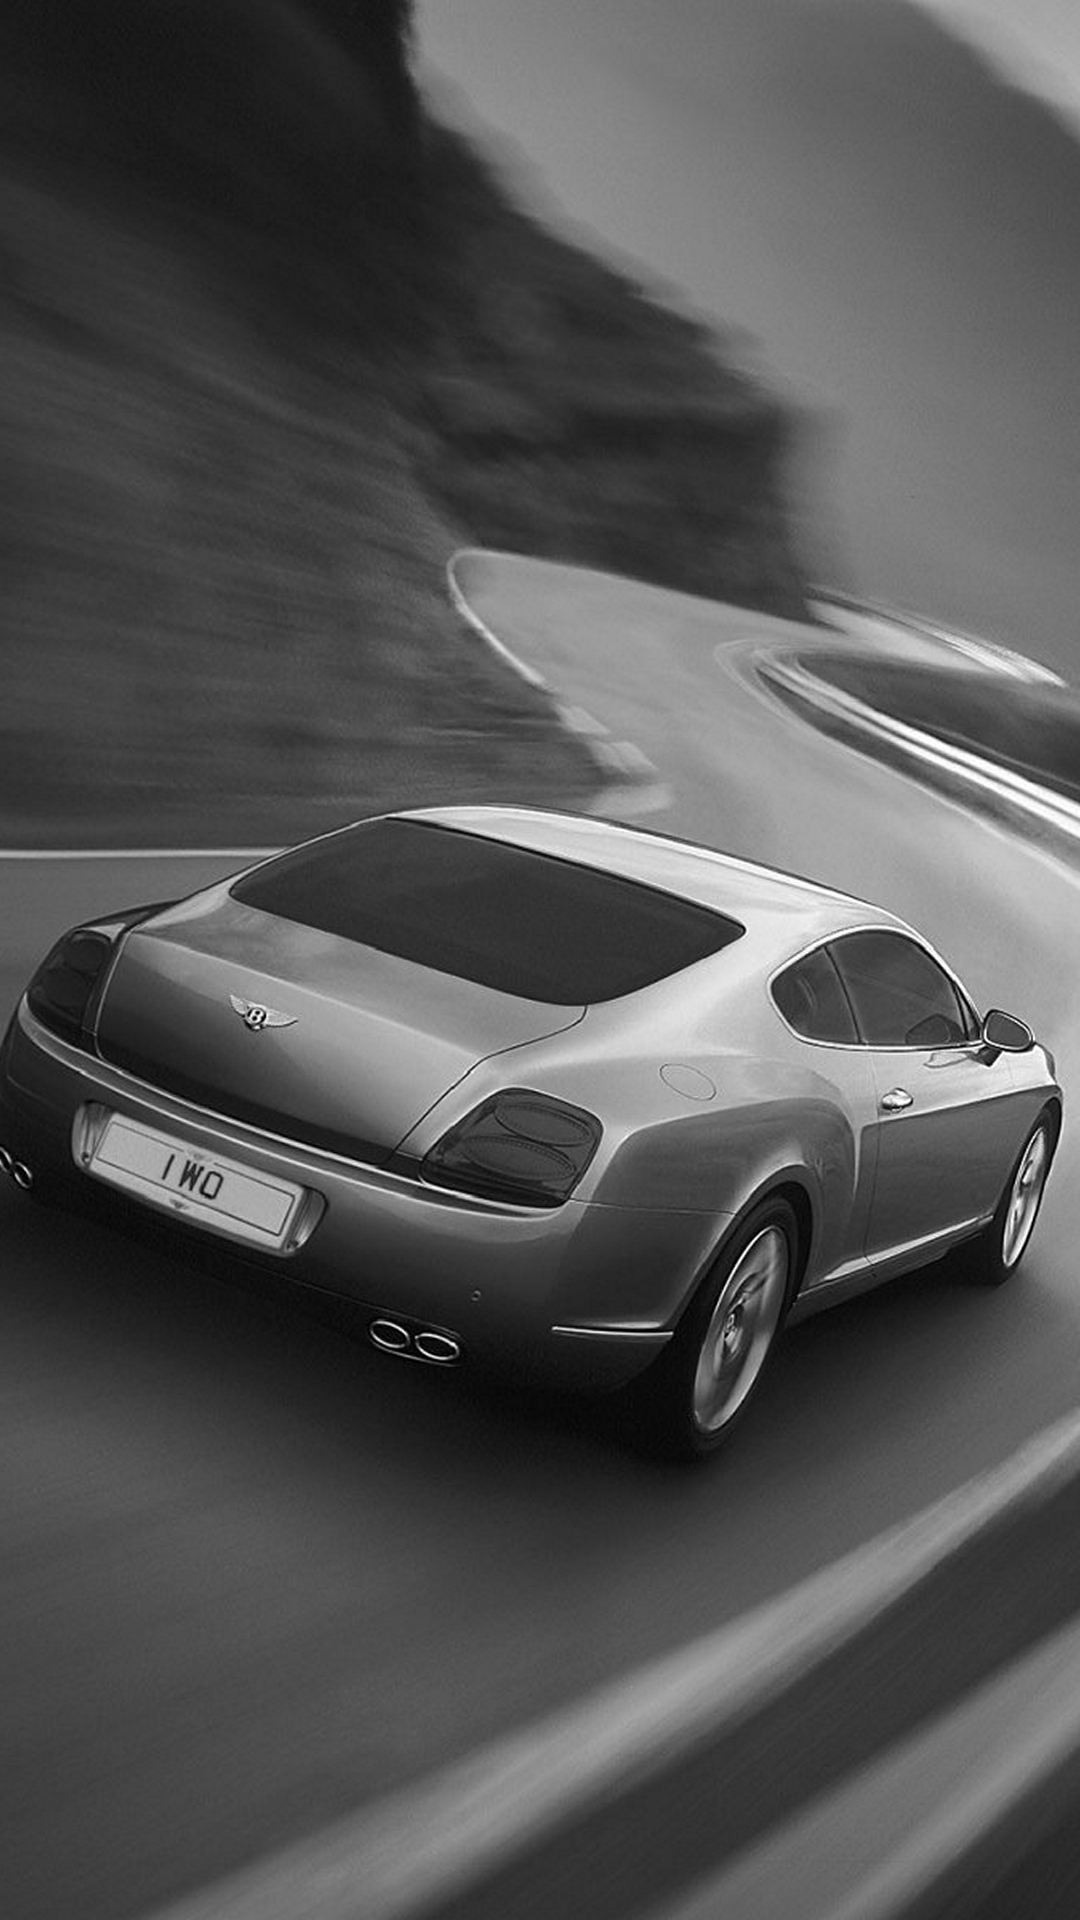 Wallpapers for galaxy bentley motors continental gt for for Sfondi hd samsung